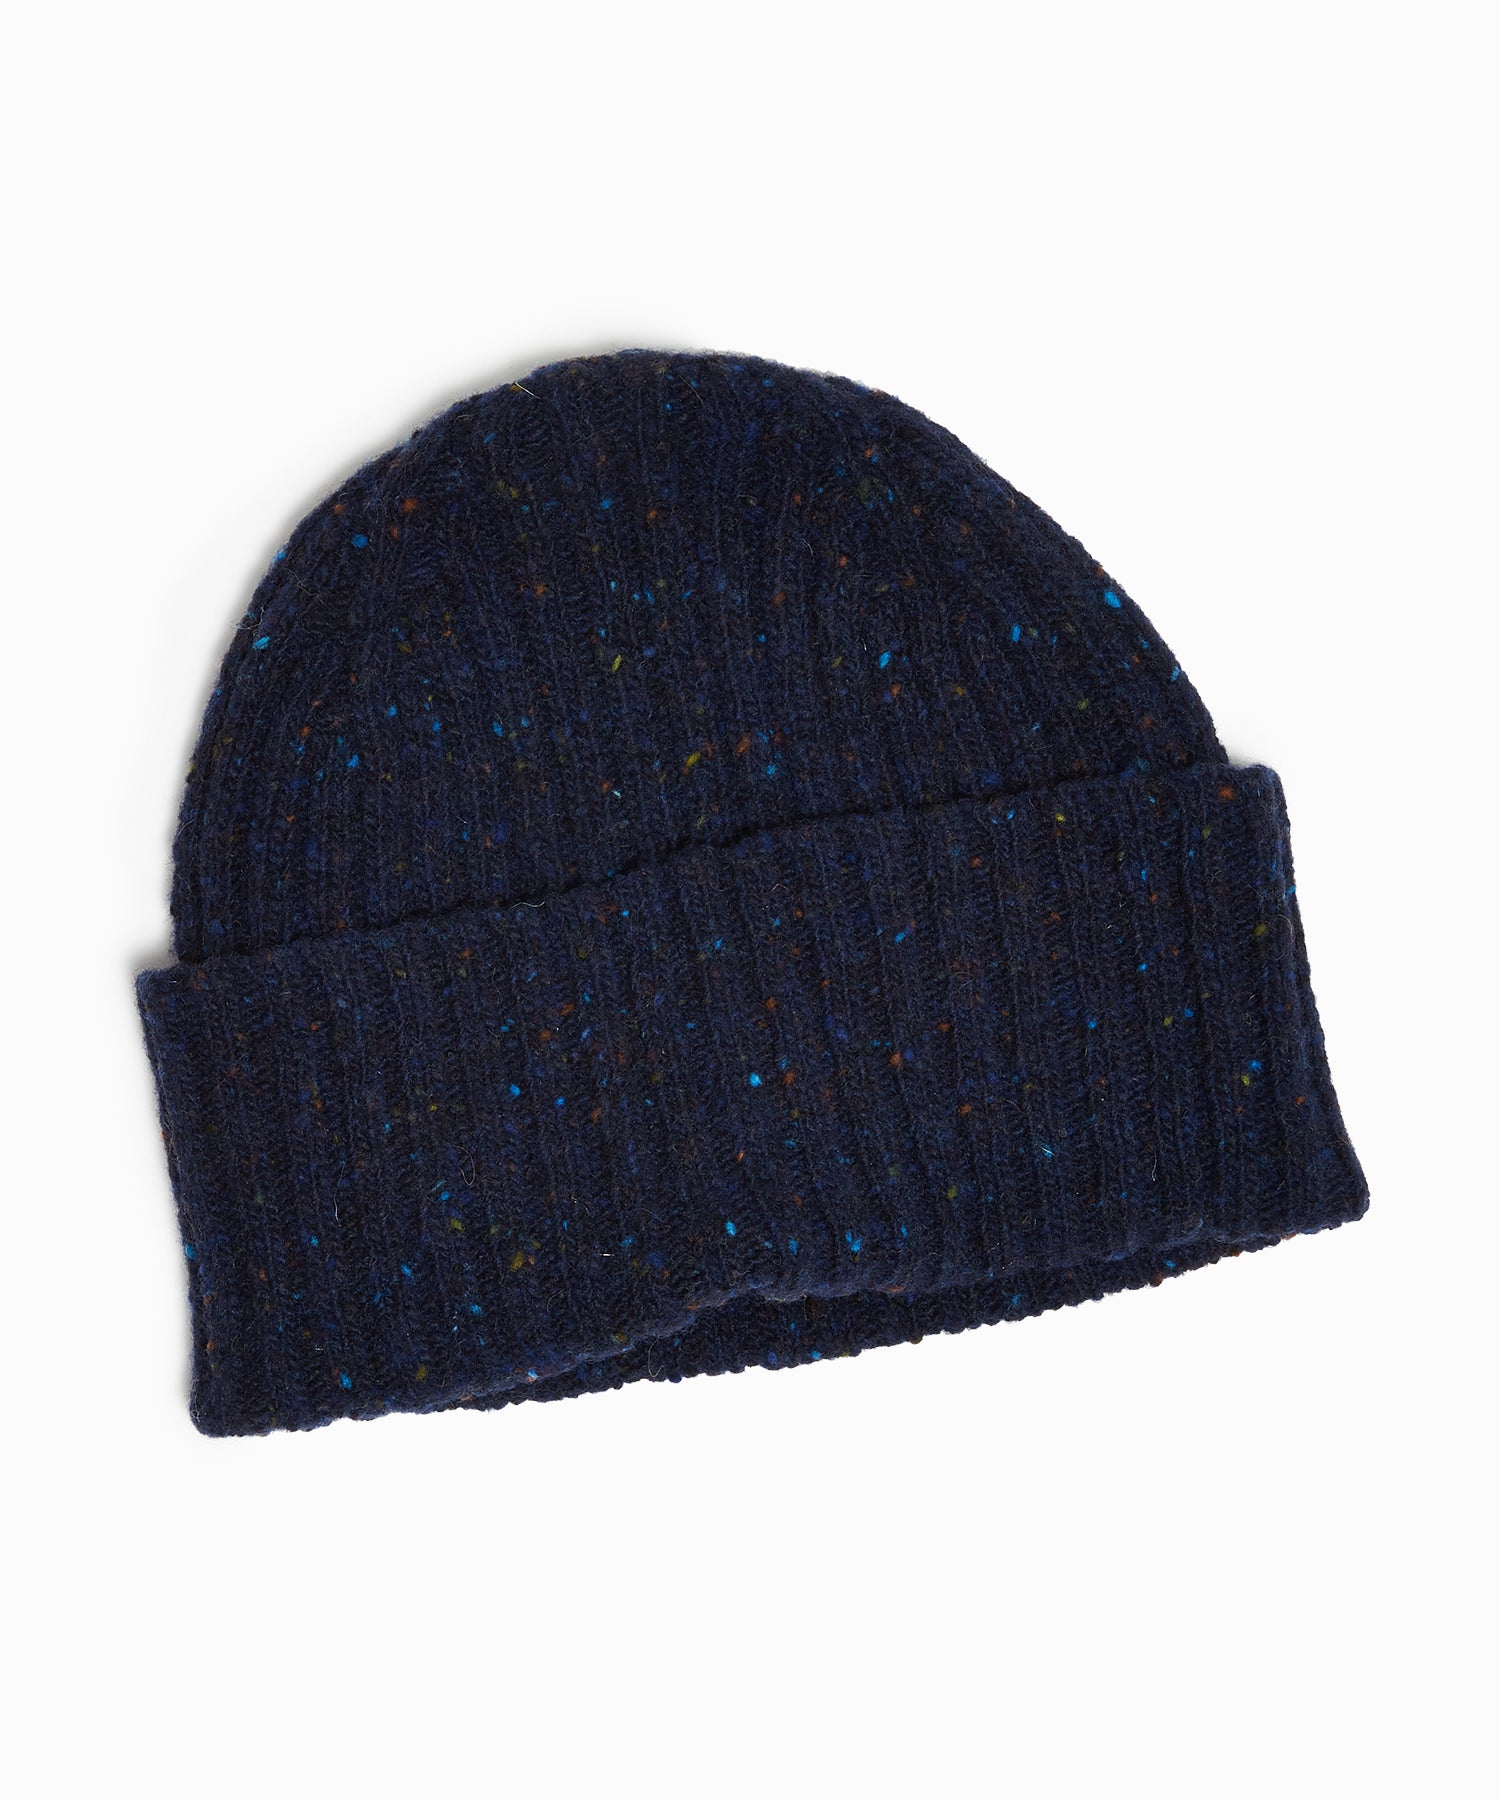 Drake's Lambswool/Angora Ribbed Hat in Navy